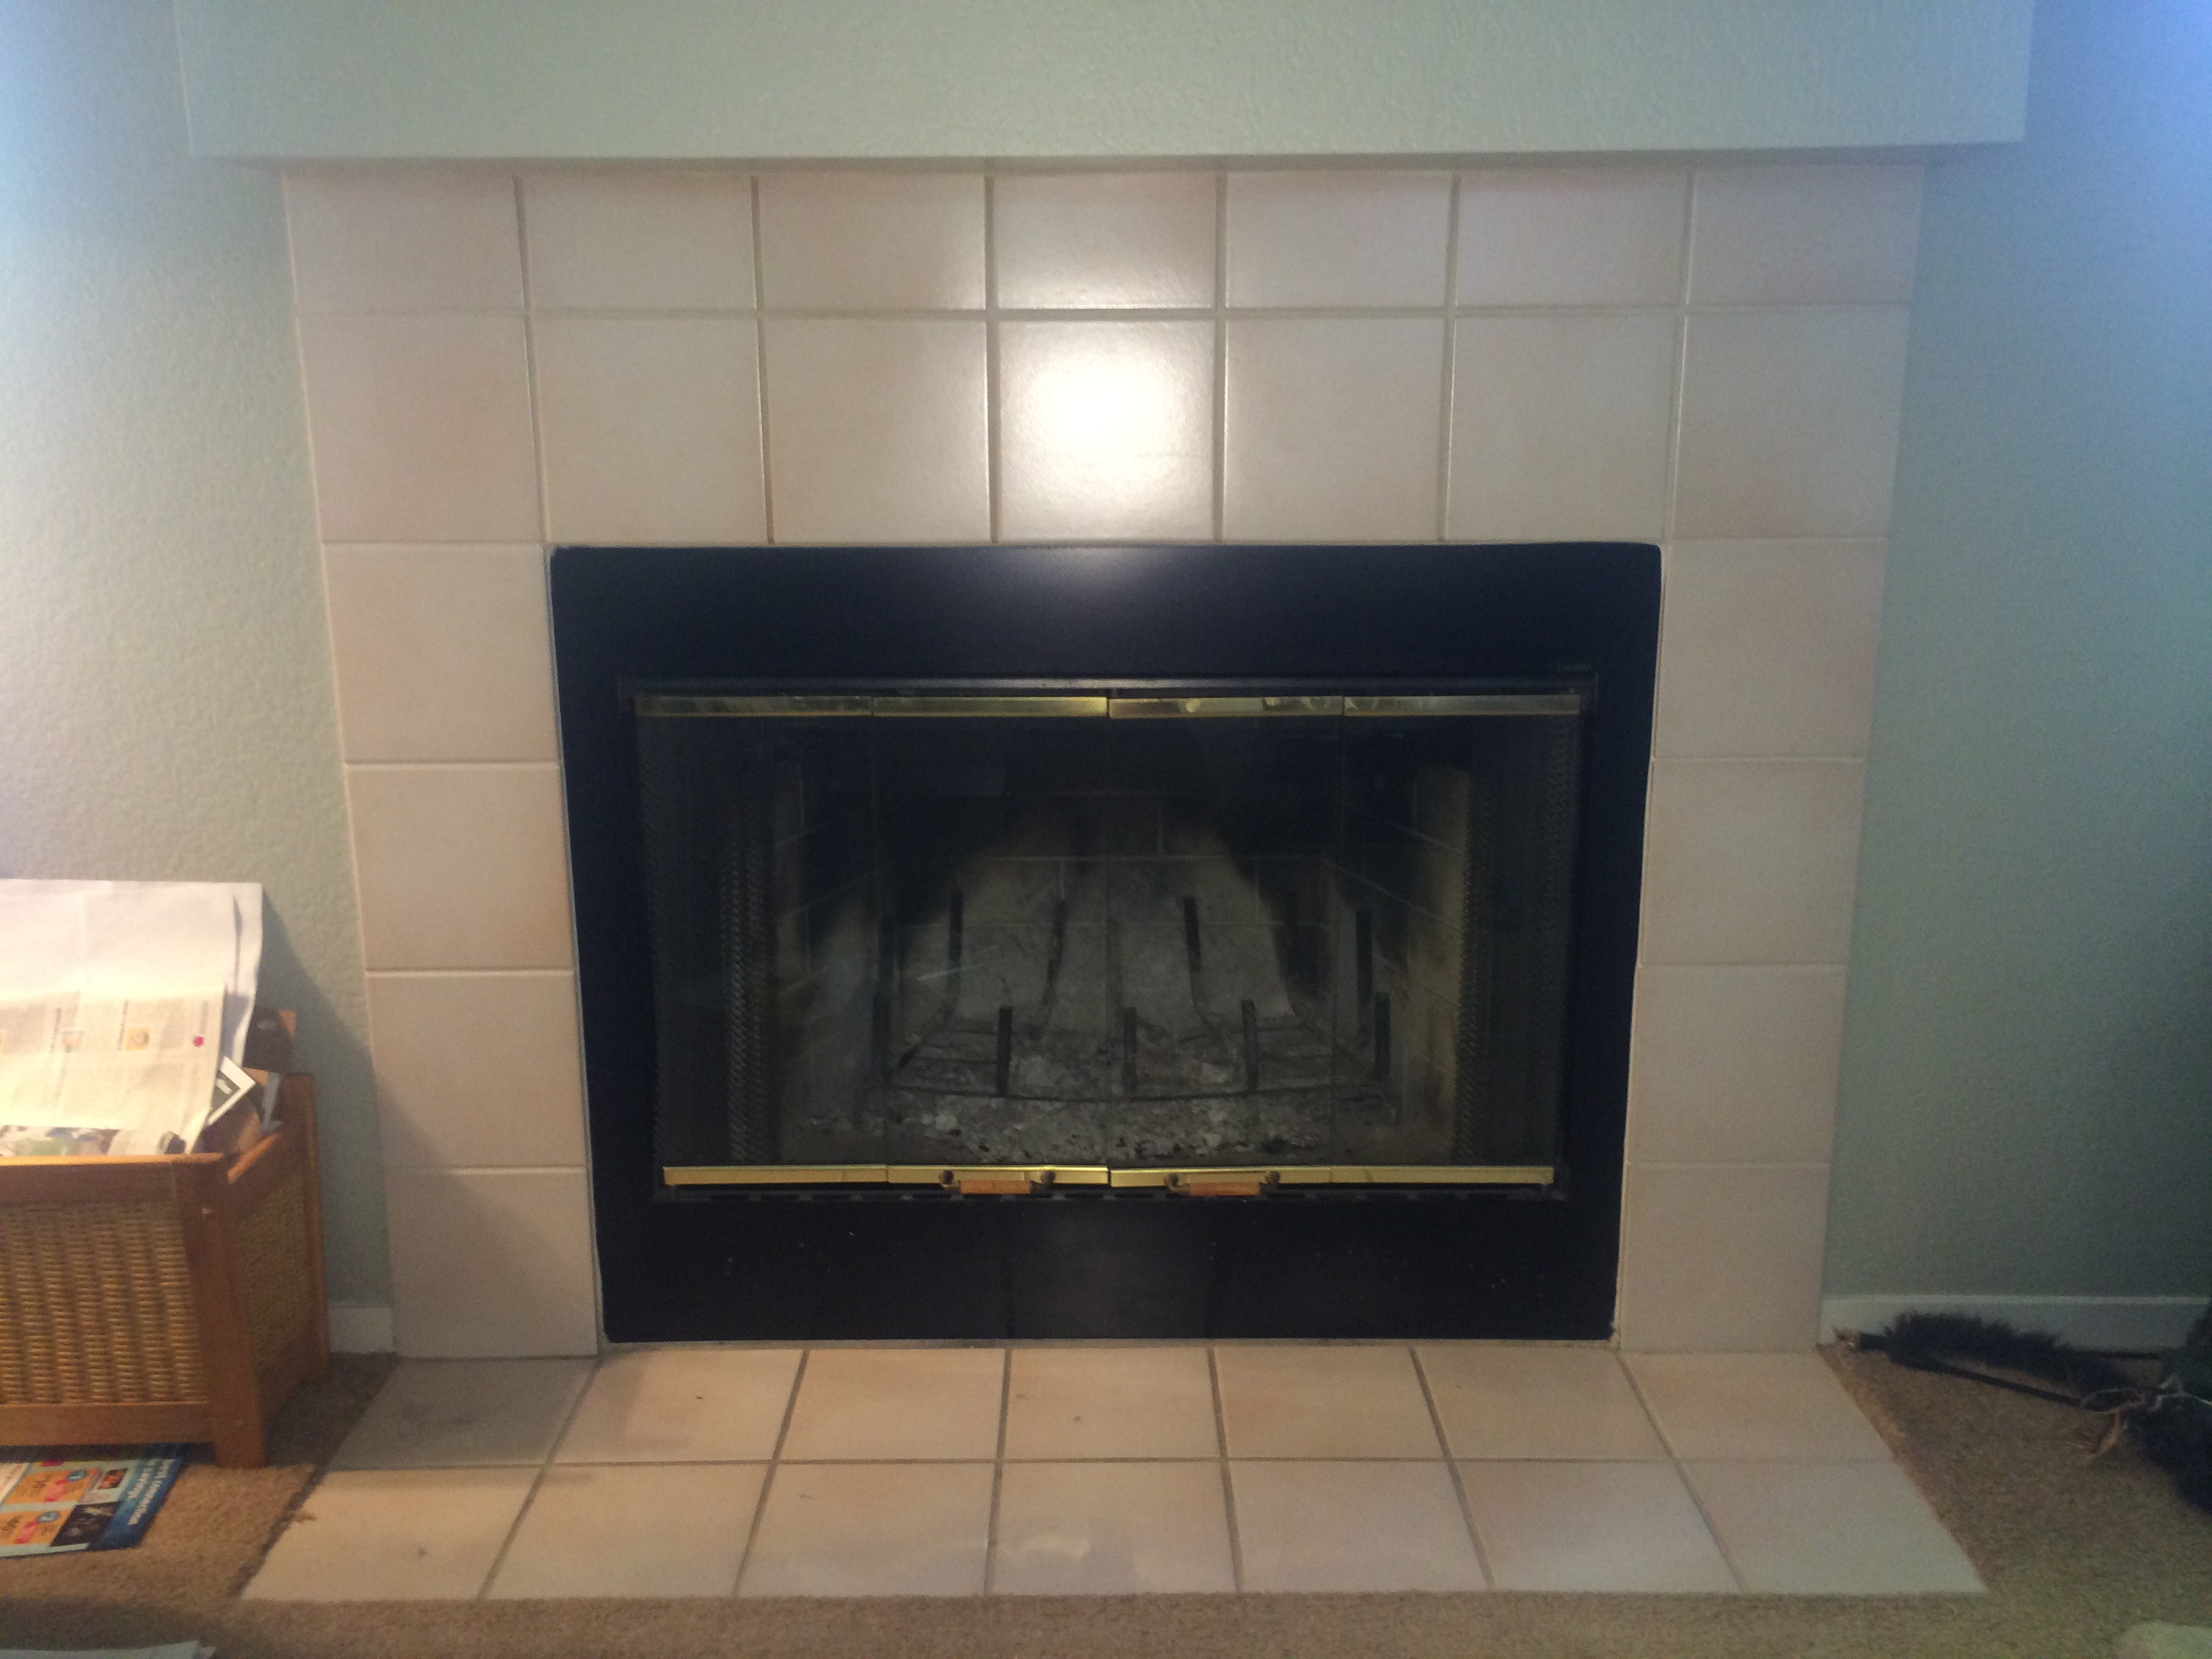 High Efficiency Fireplace Part - 19: Fireplace Replacement U2014 Inefficent Wood To High Efficiency Gas